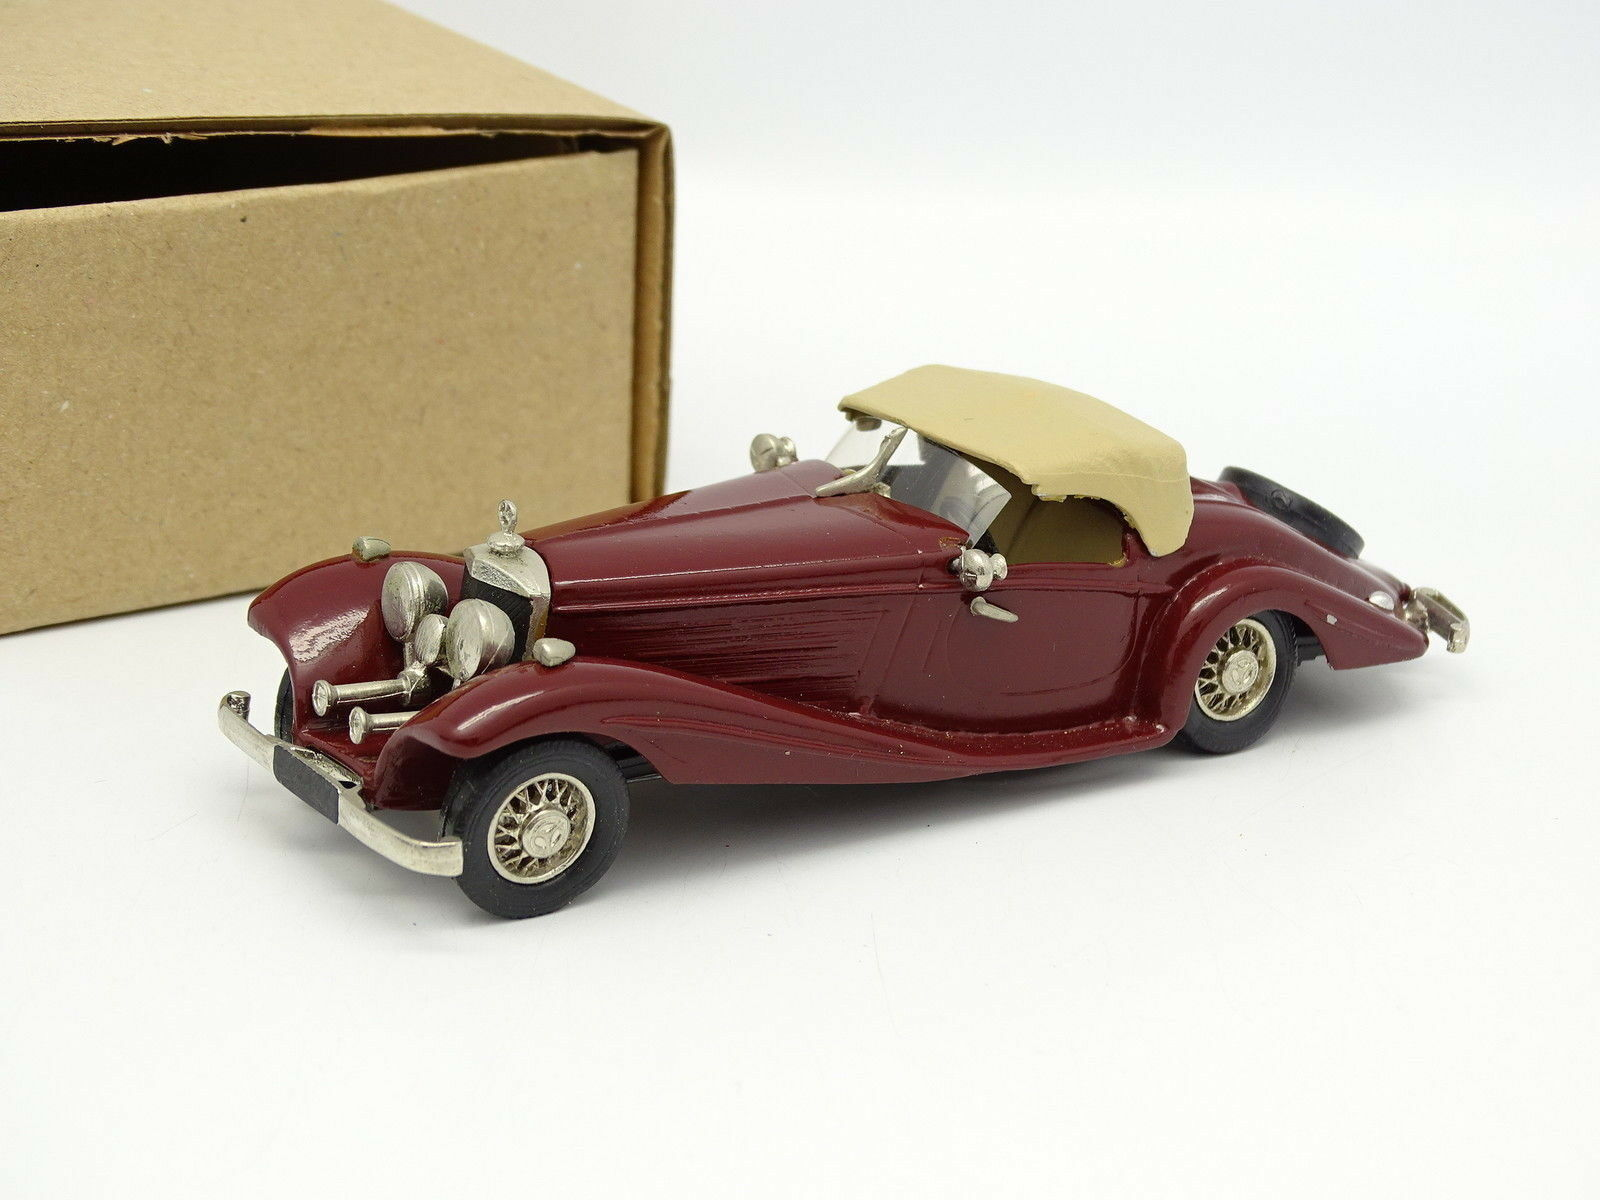 Western Modelli Metallo 1 43 - Mercedes 540K Special Roadster- red